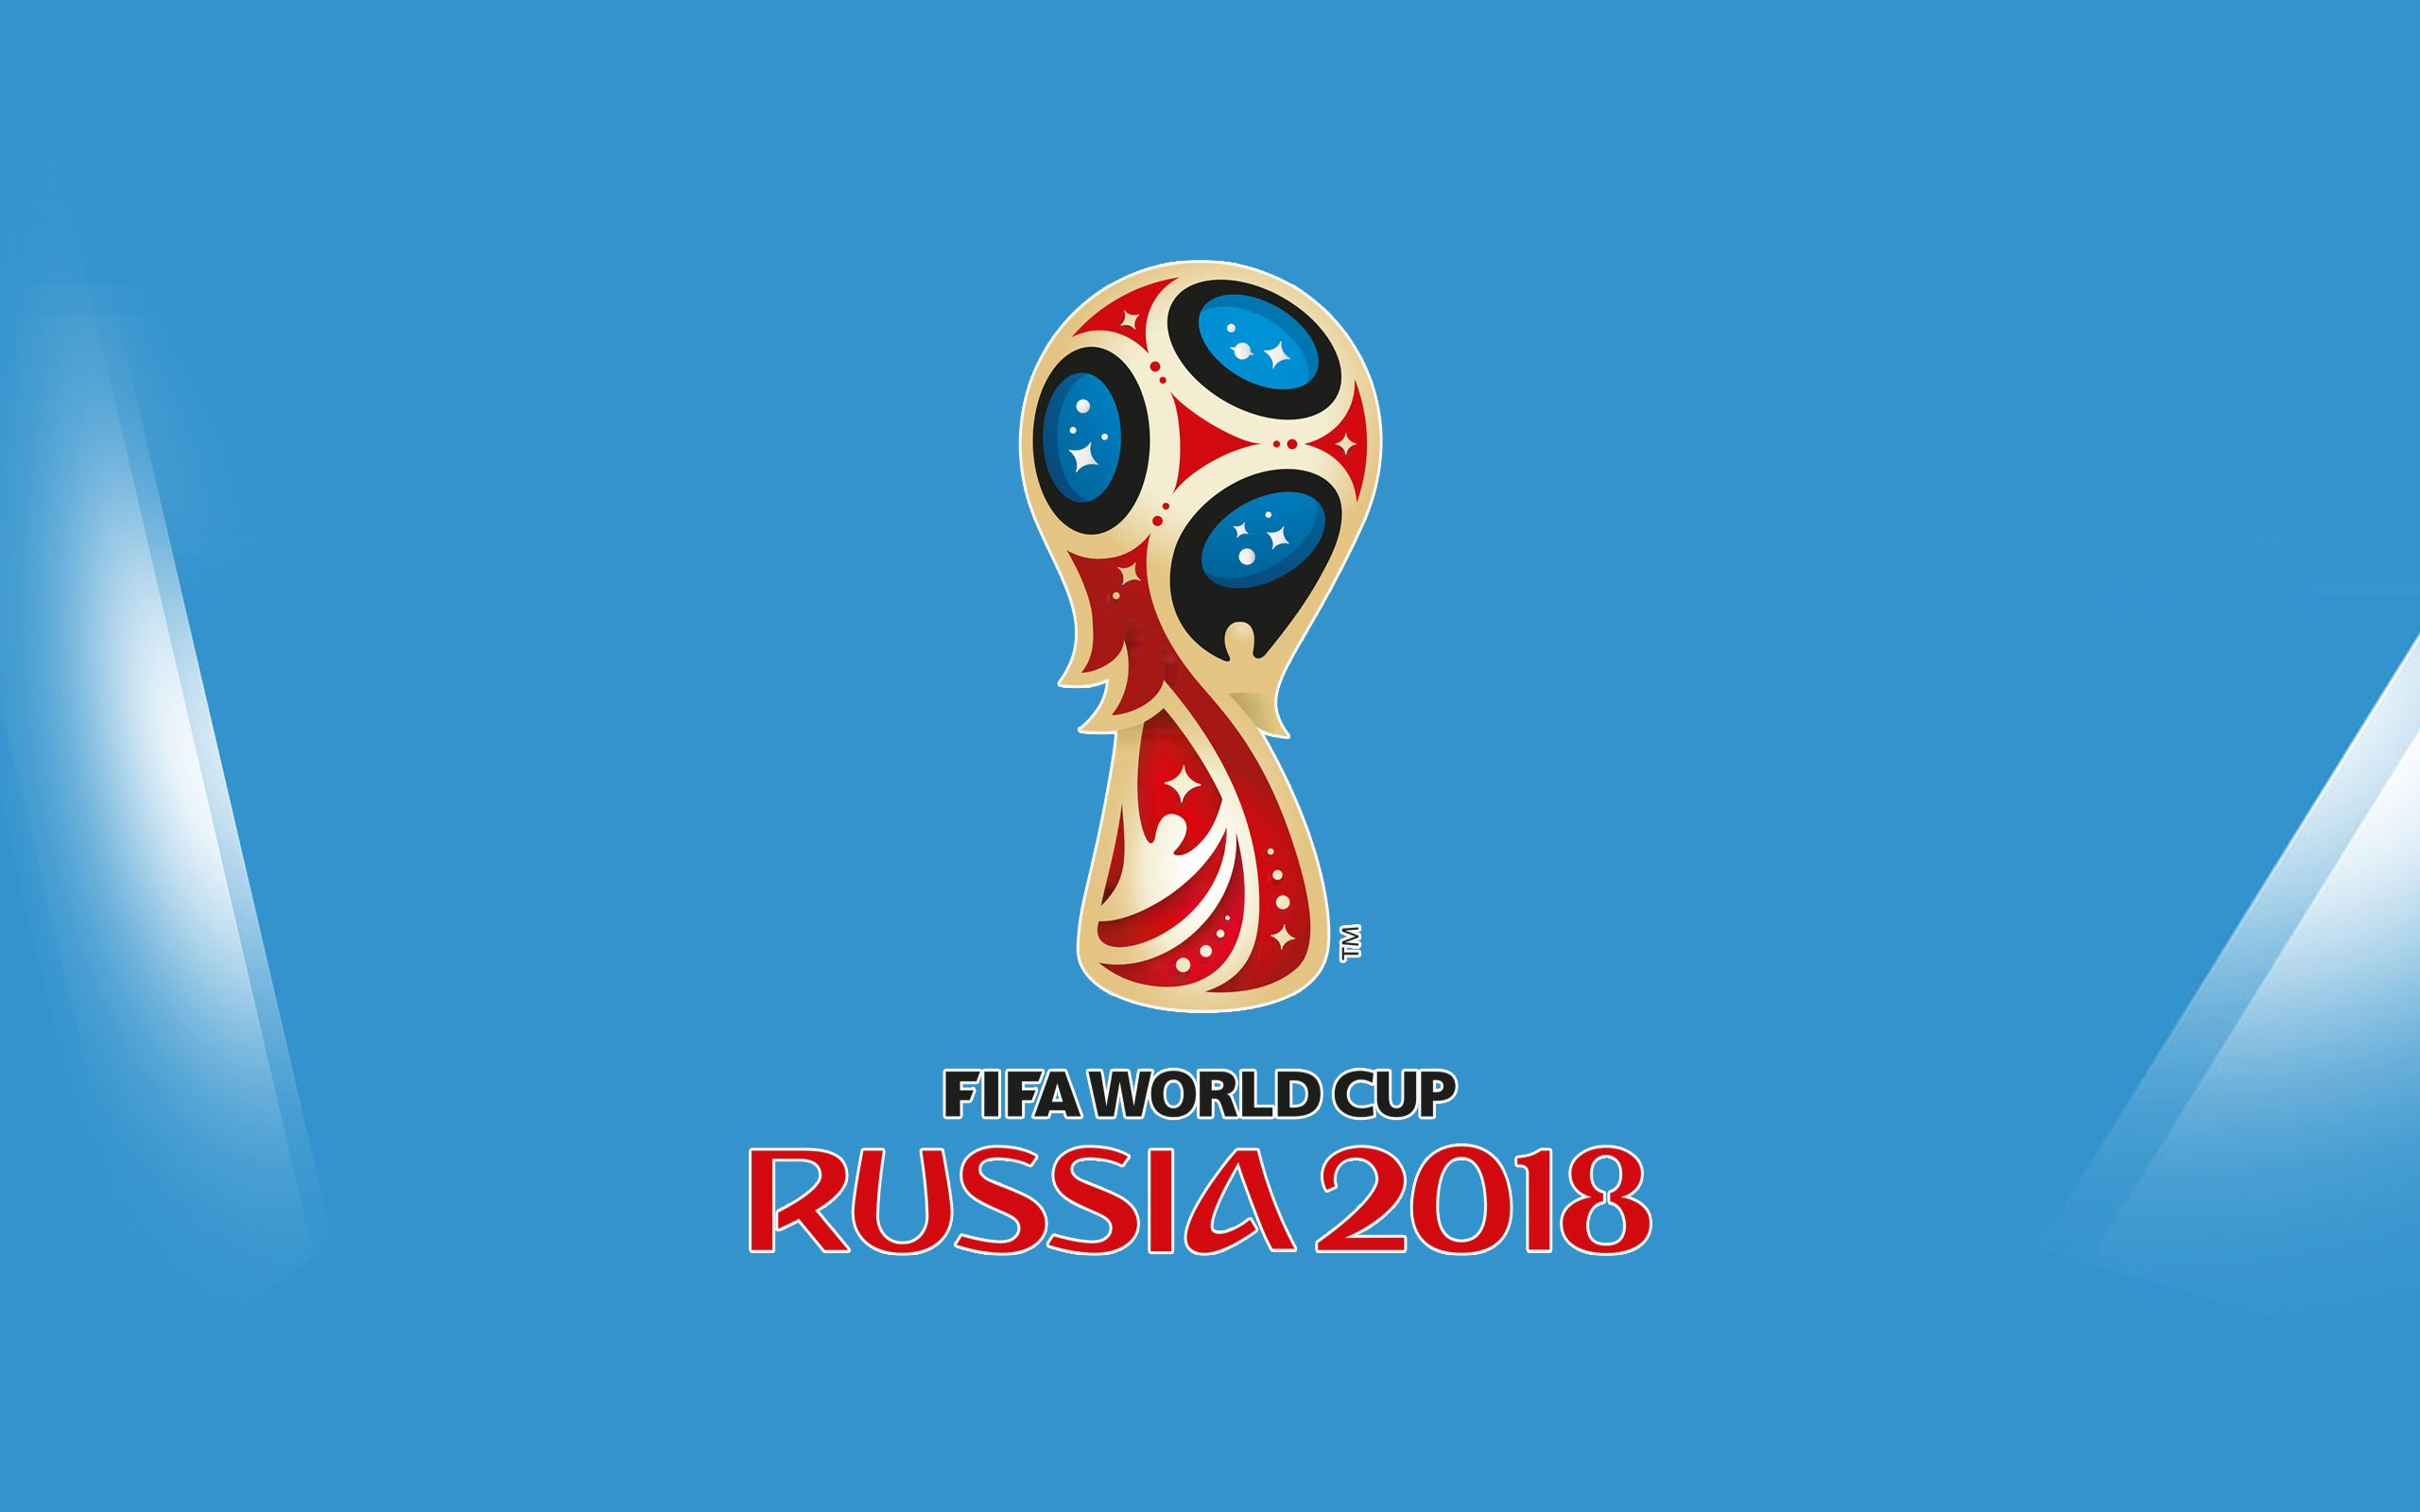 Wallpaper 2018 Fifa World Cup 2560x1600 Hd Picture Image